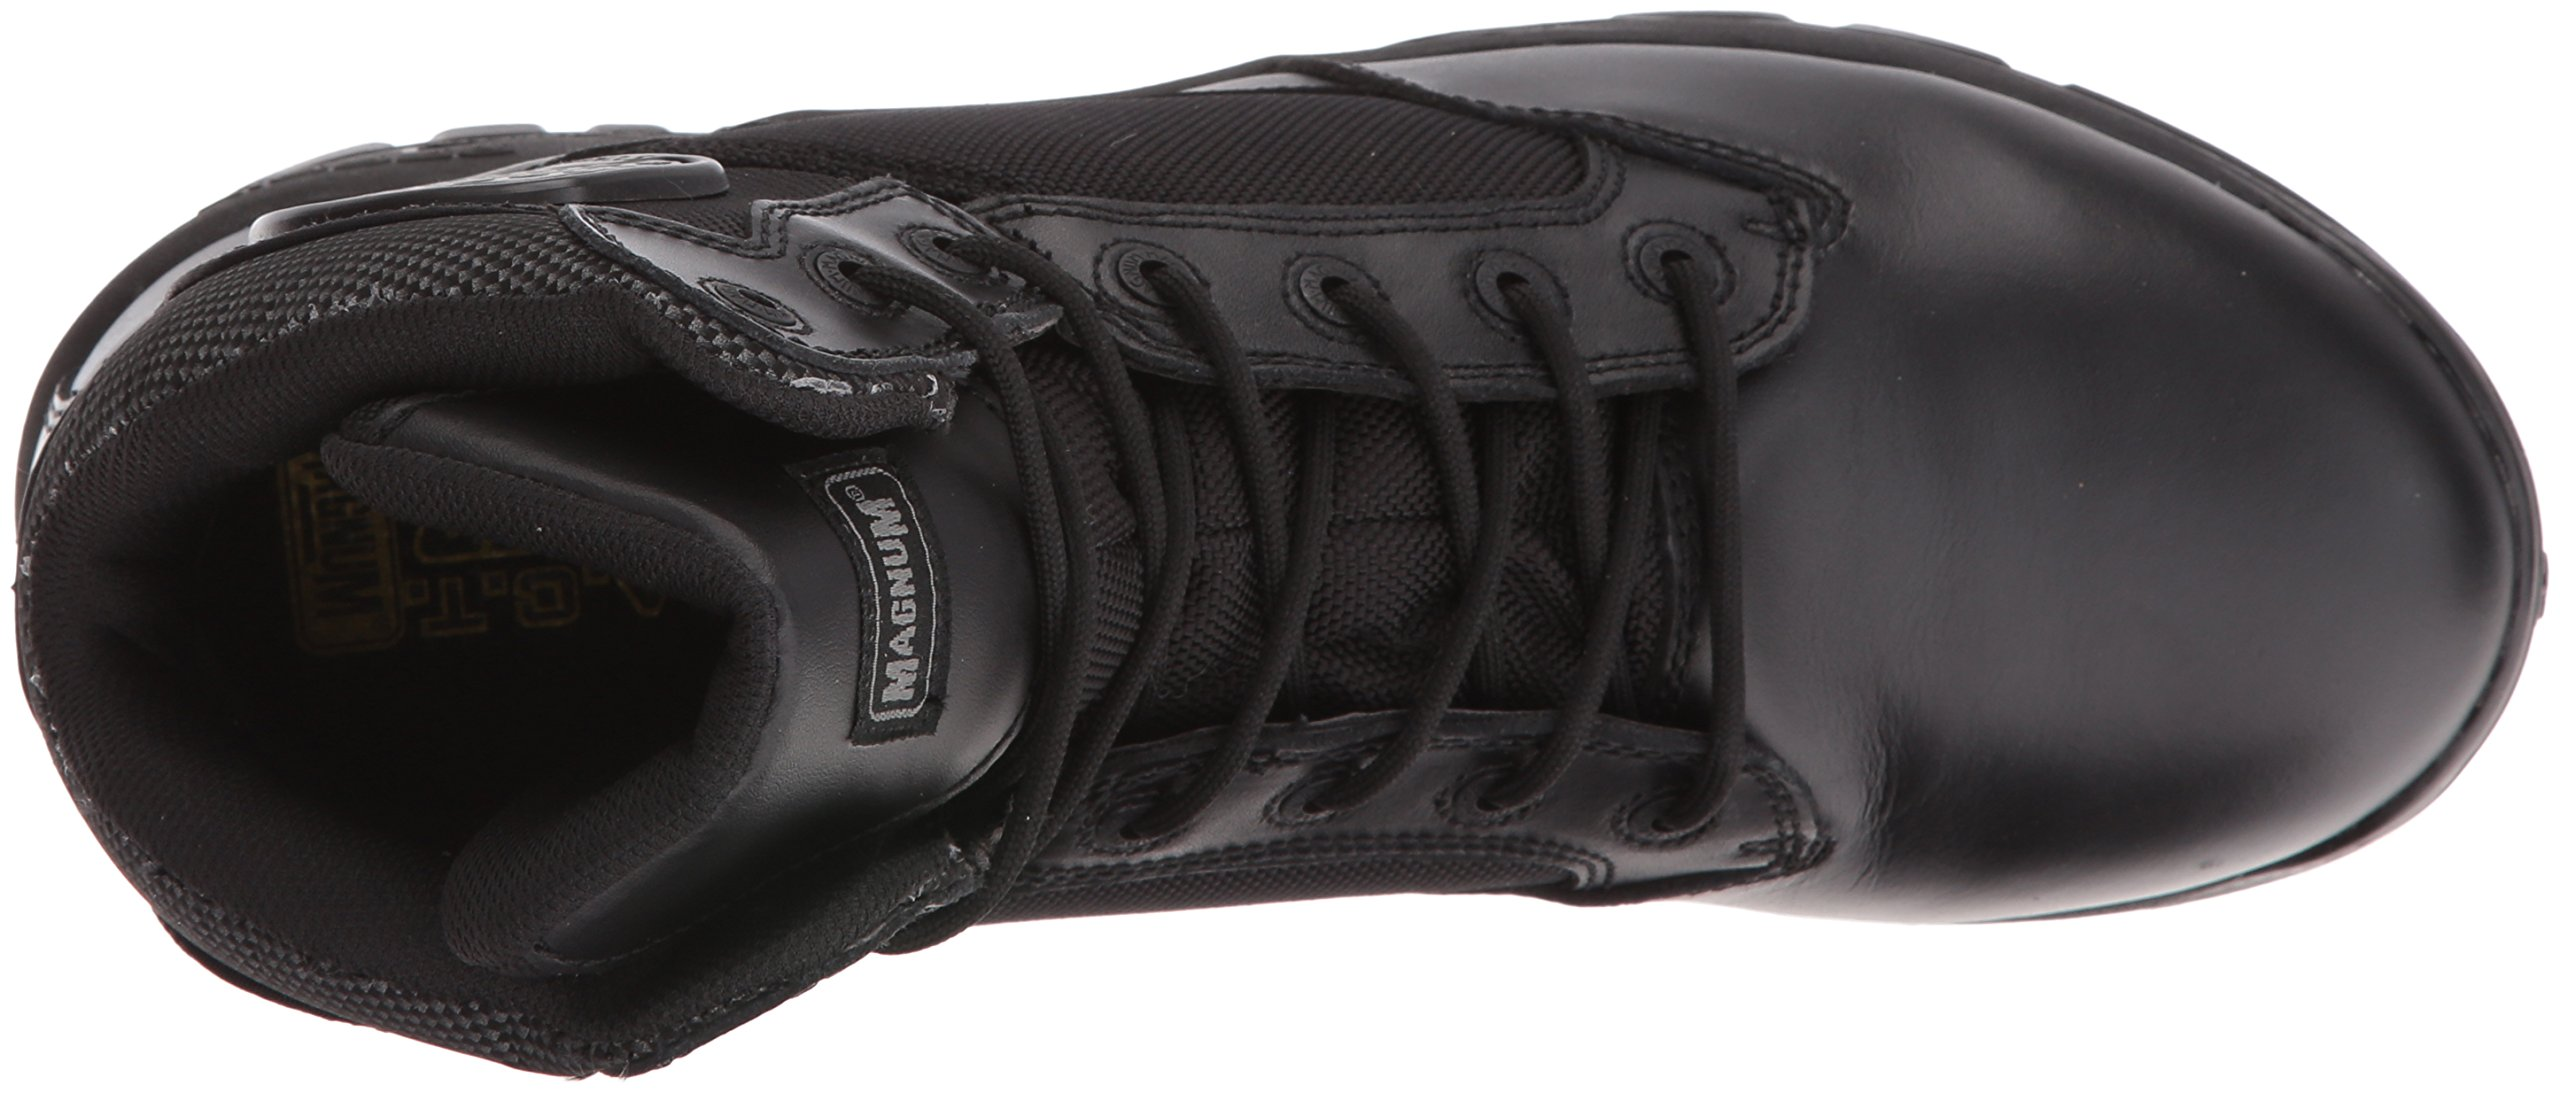 Magnum Men's Strike Force 6'' Waterproof Military & Tactical Boot, Black 14 W US by Magnum (Image #8)